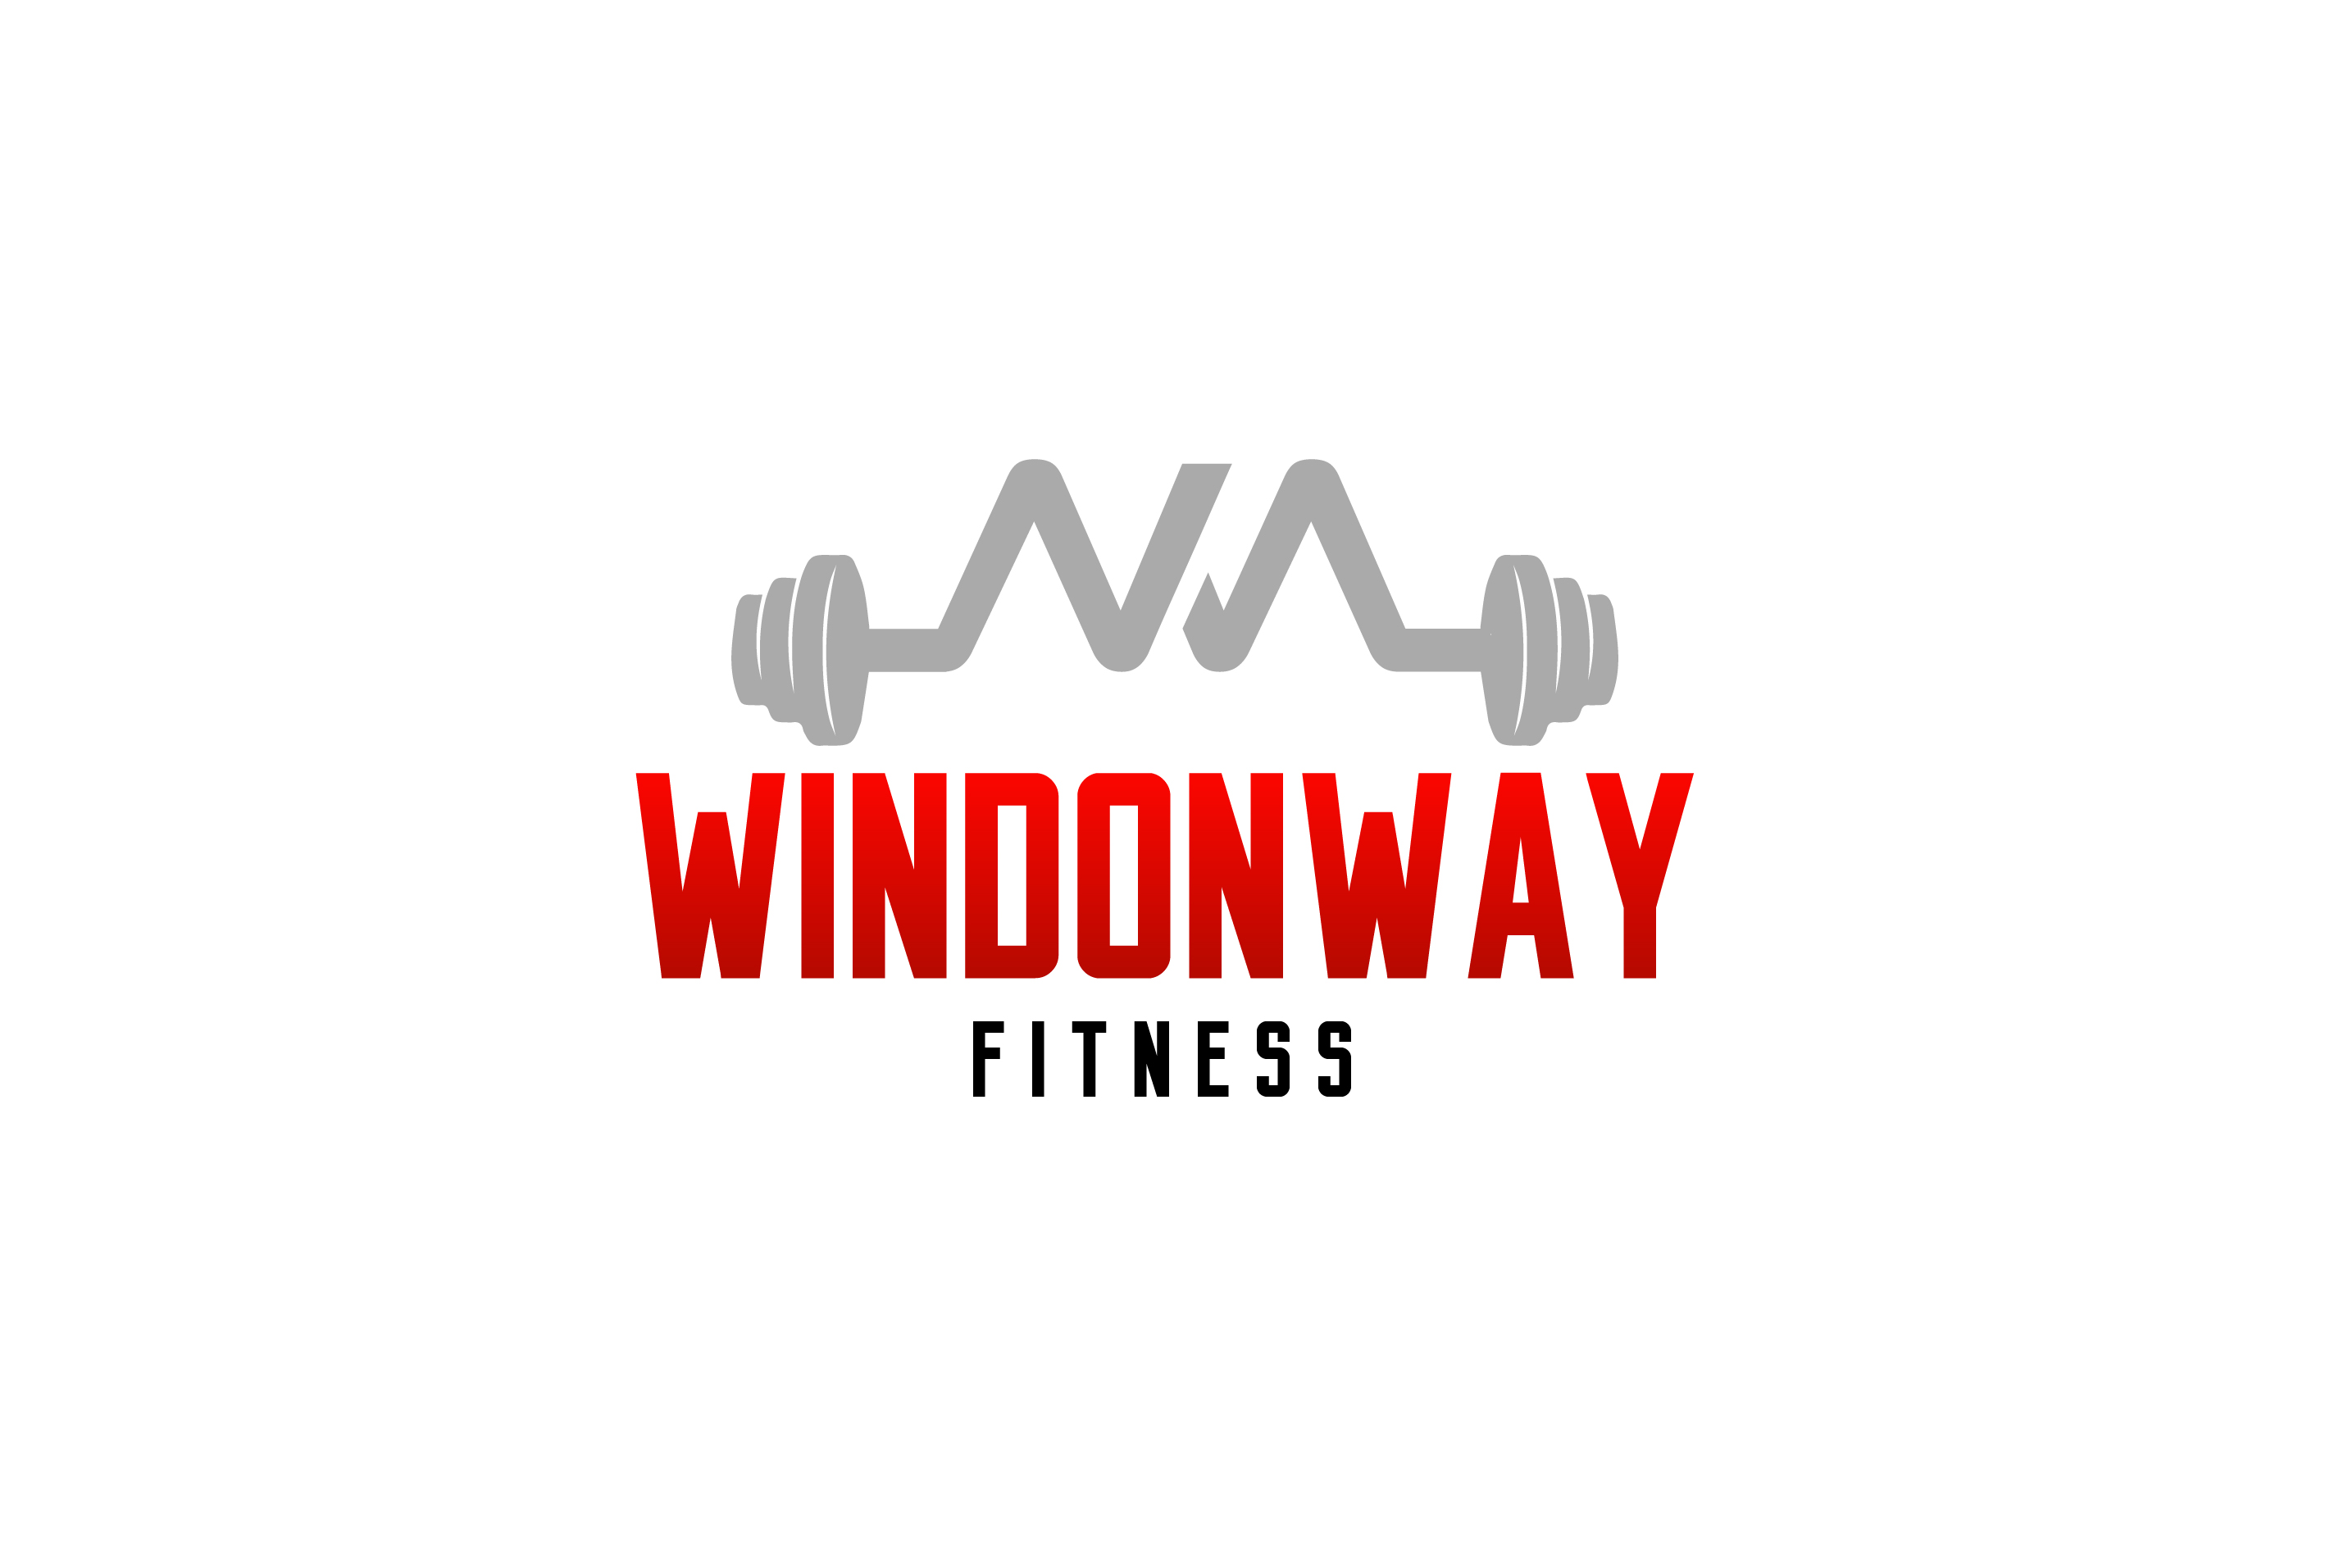 WindonWay Fitness